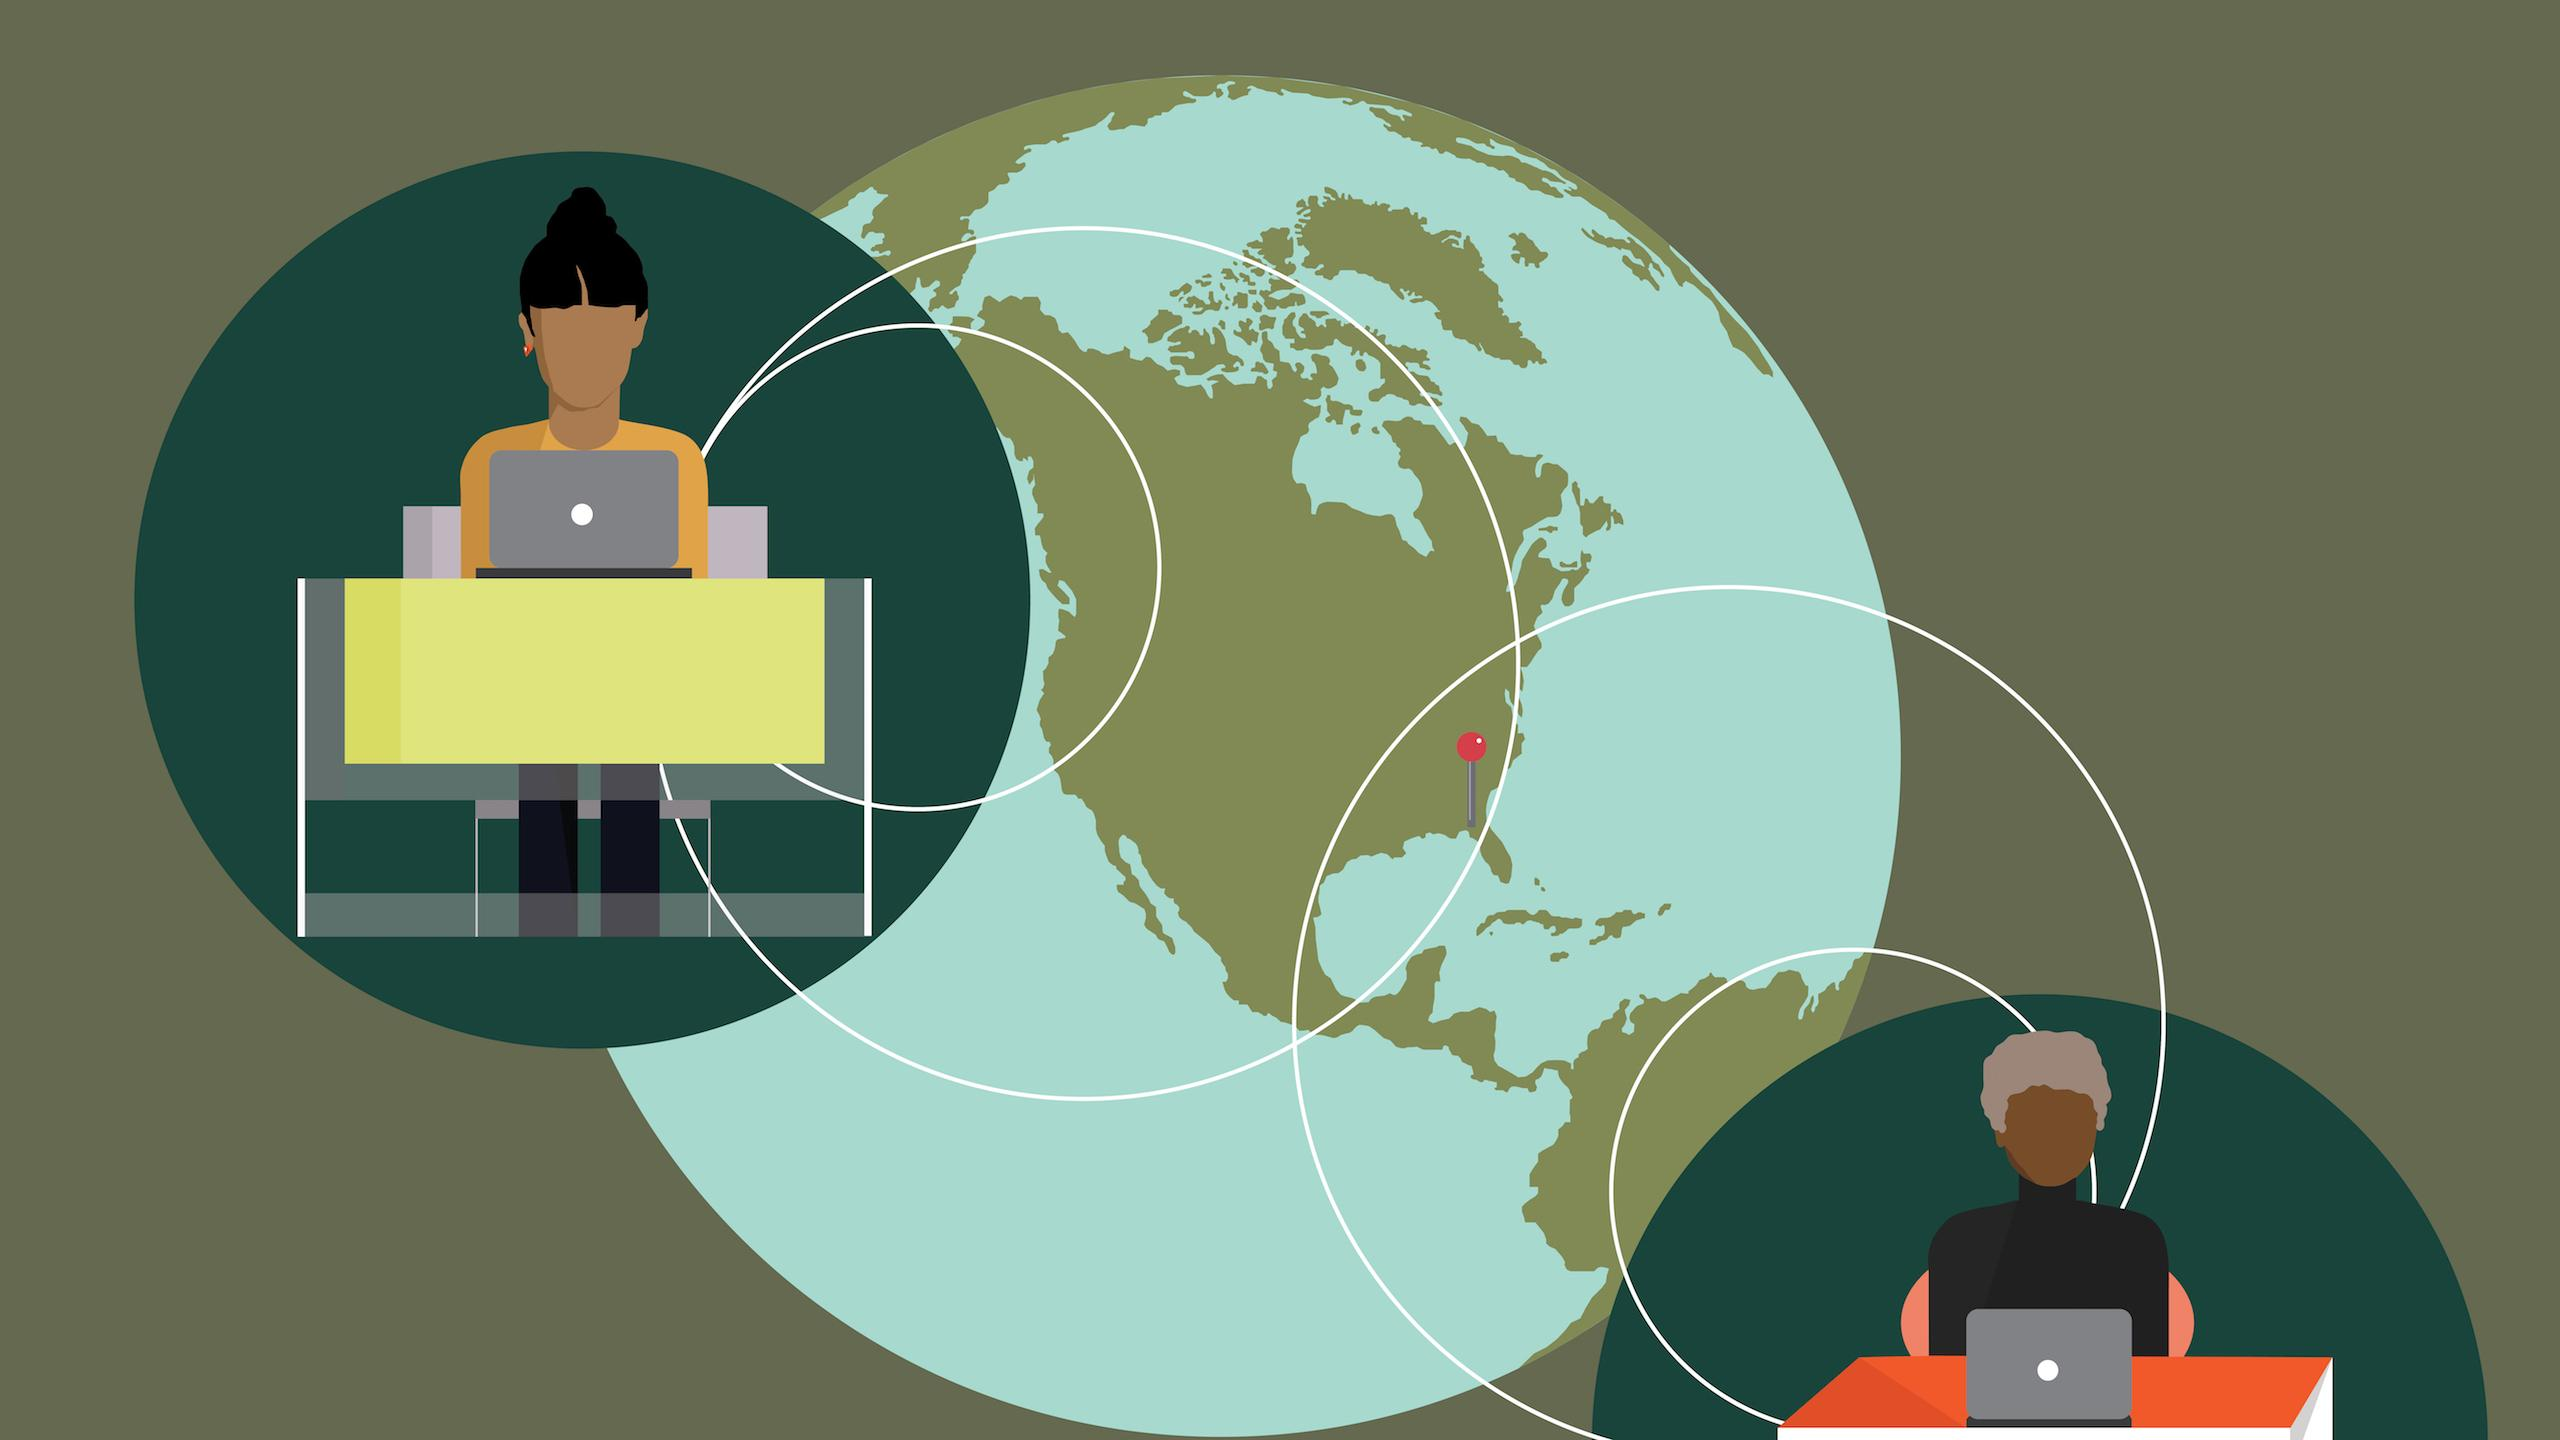 An illustration of two students on opposite sides of a globe. They are both sitting at desks working on their laptops.